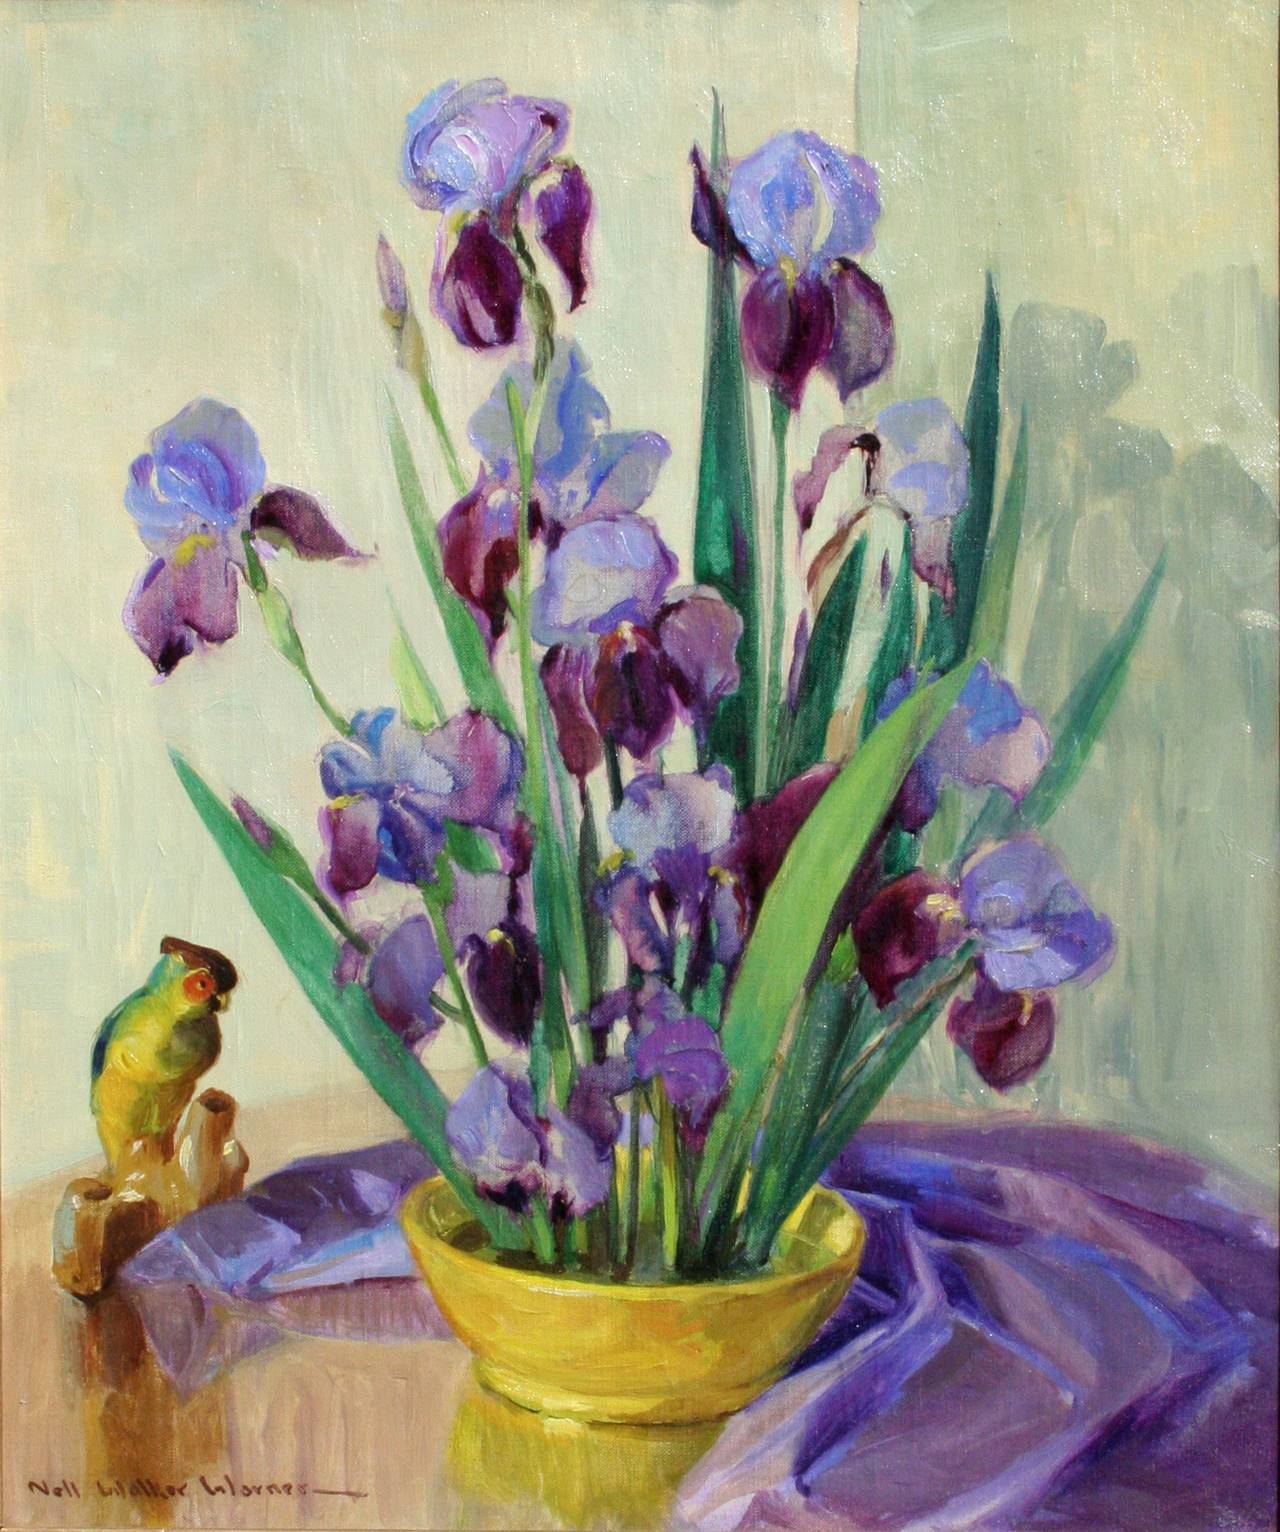 Mid Century Bearded Irises and Parrot Still Life - Painting by Nell Walker Warner